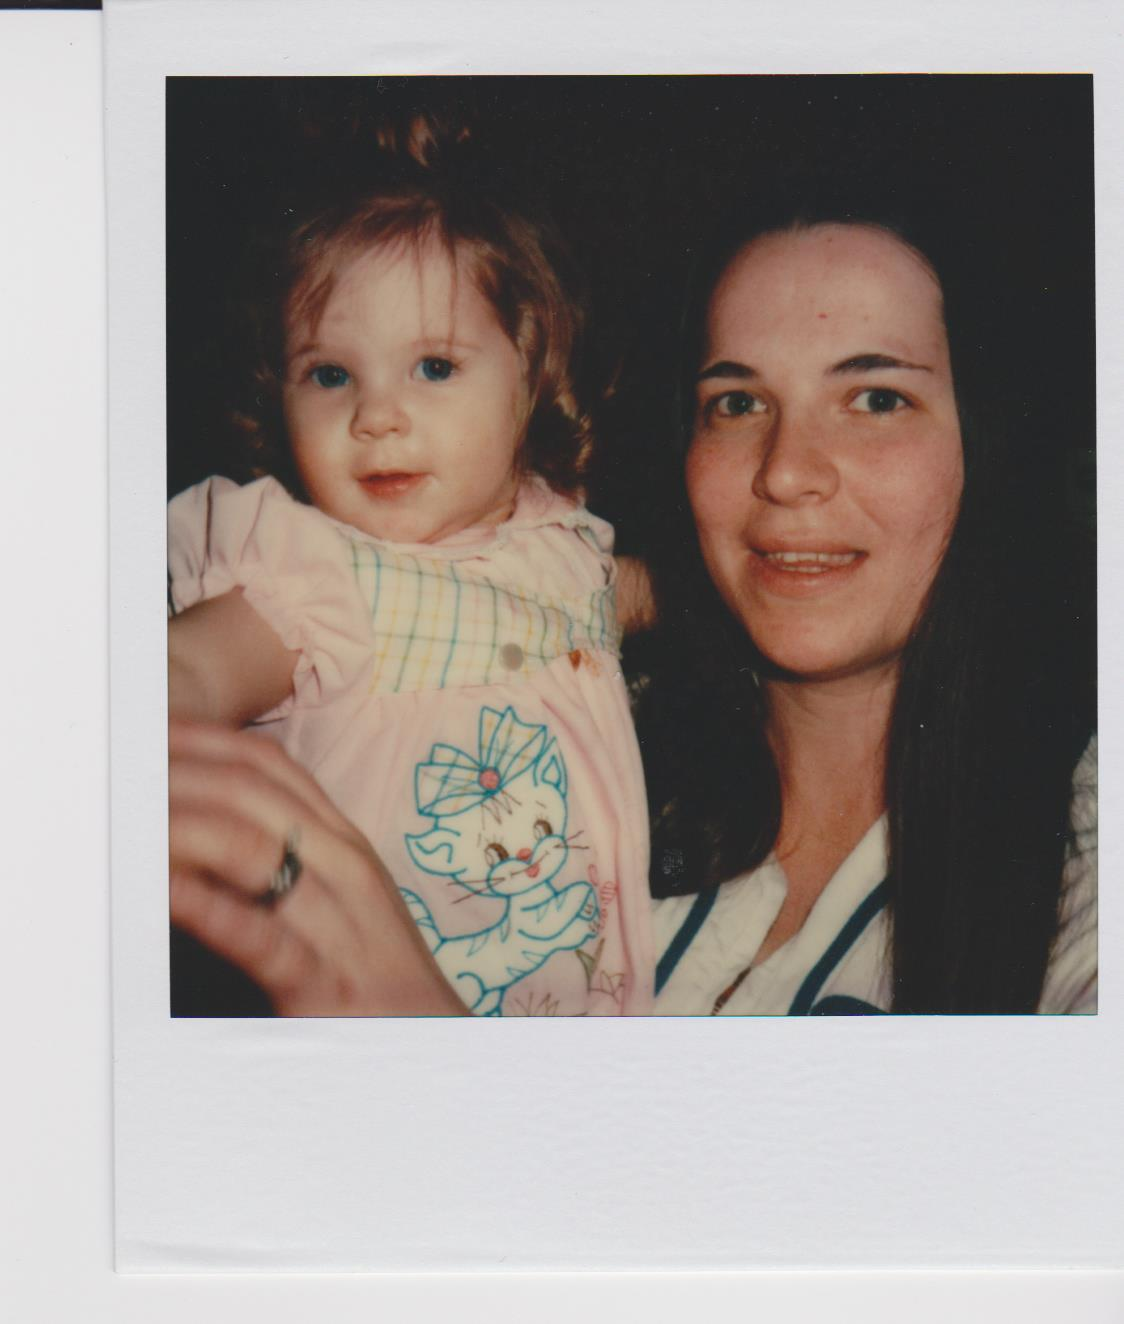 Me_and_my_mom_1979.jpg